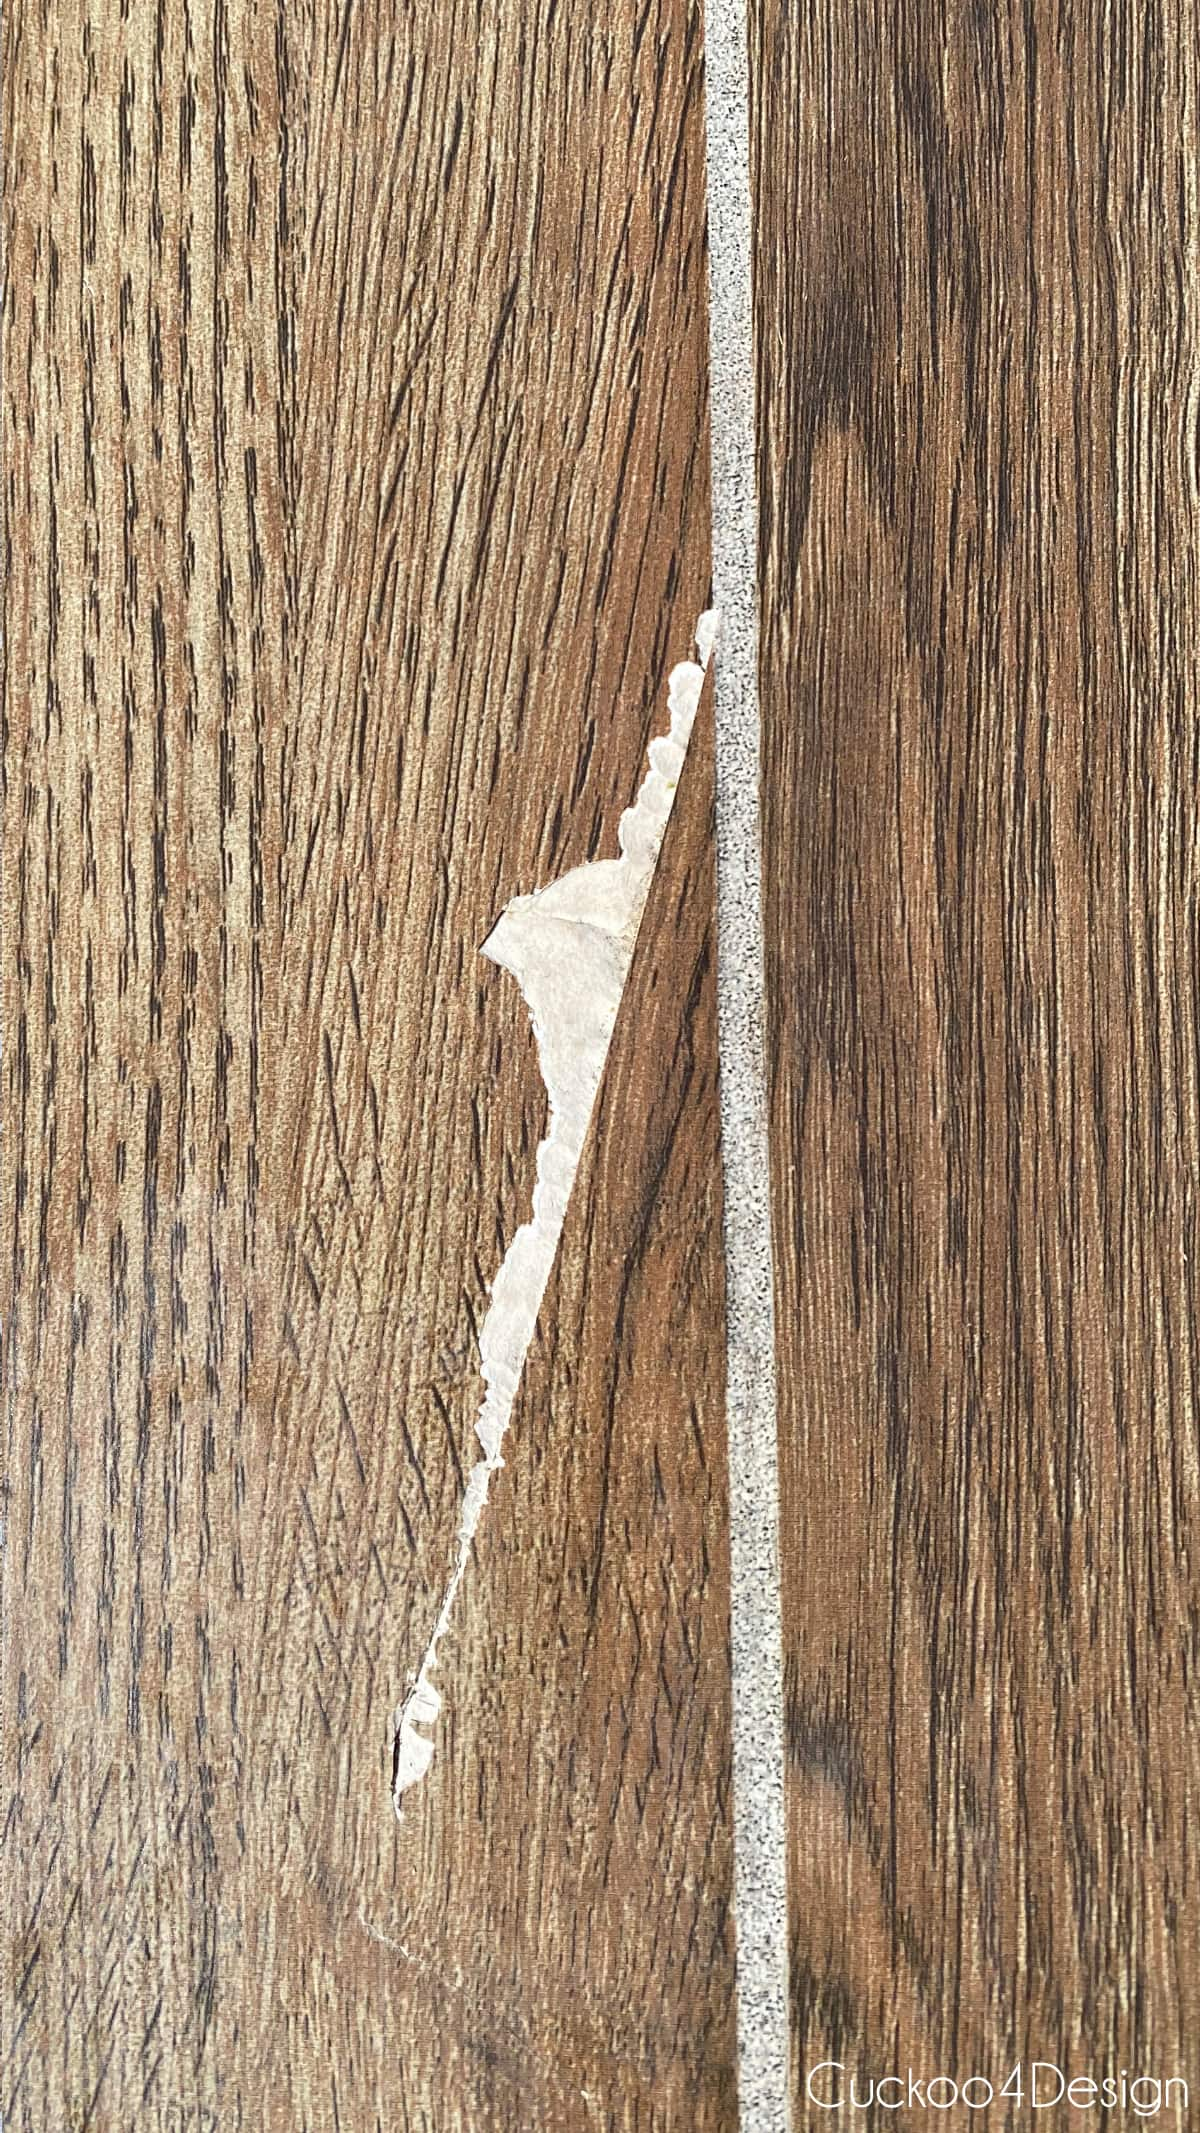 close-up view of the large chip in our wood-look tile